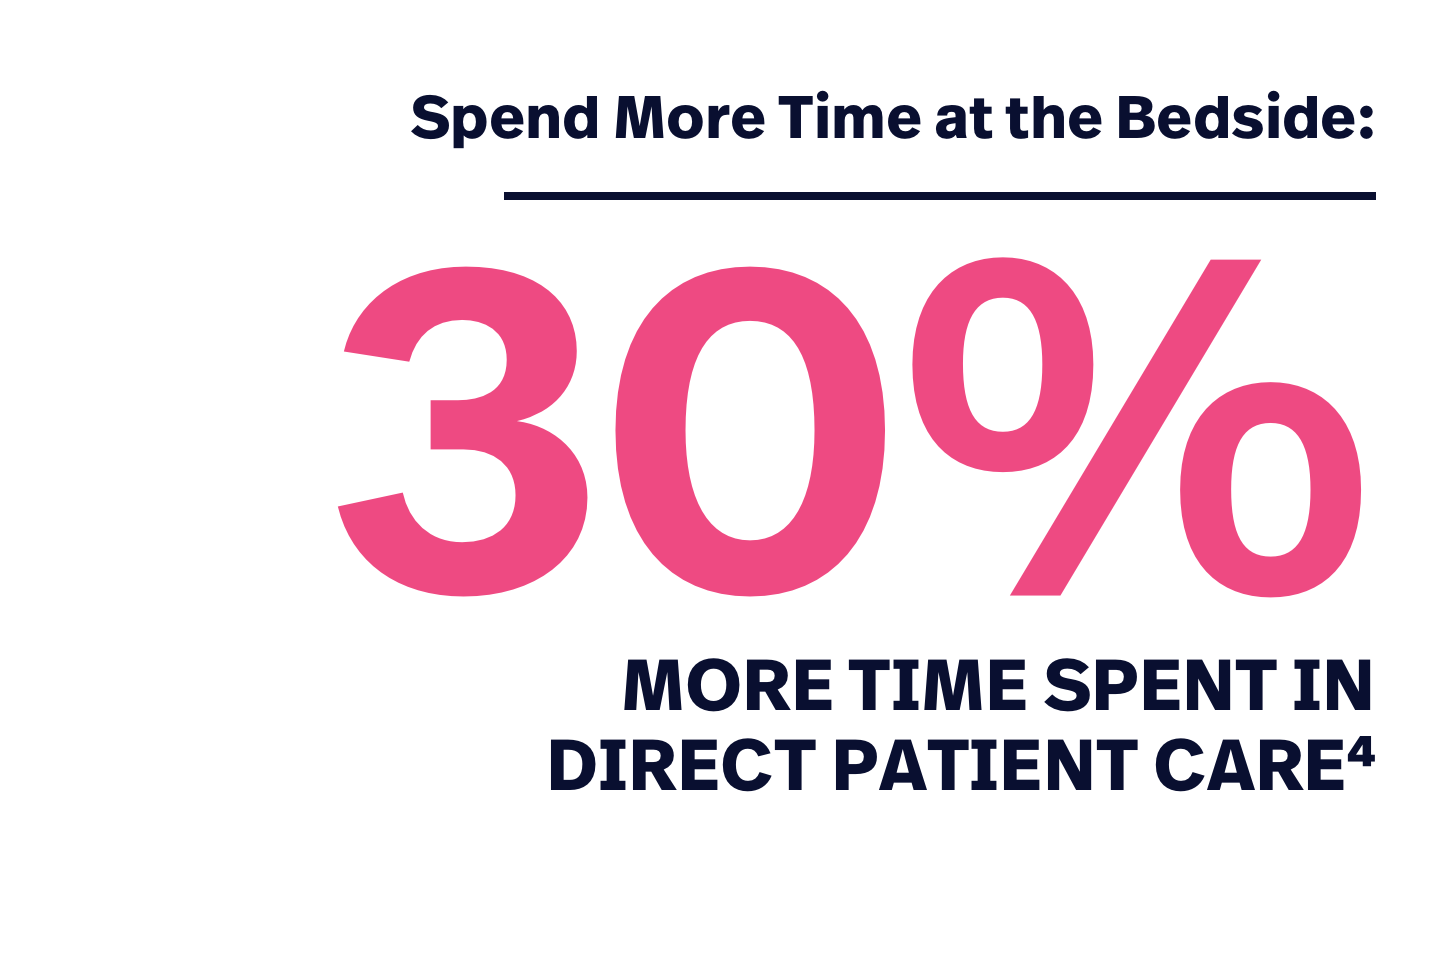 Spend more time at the bedside: 30% more time spent in direct patient care